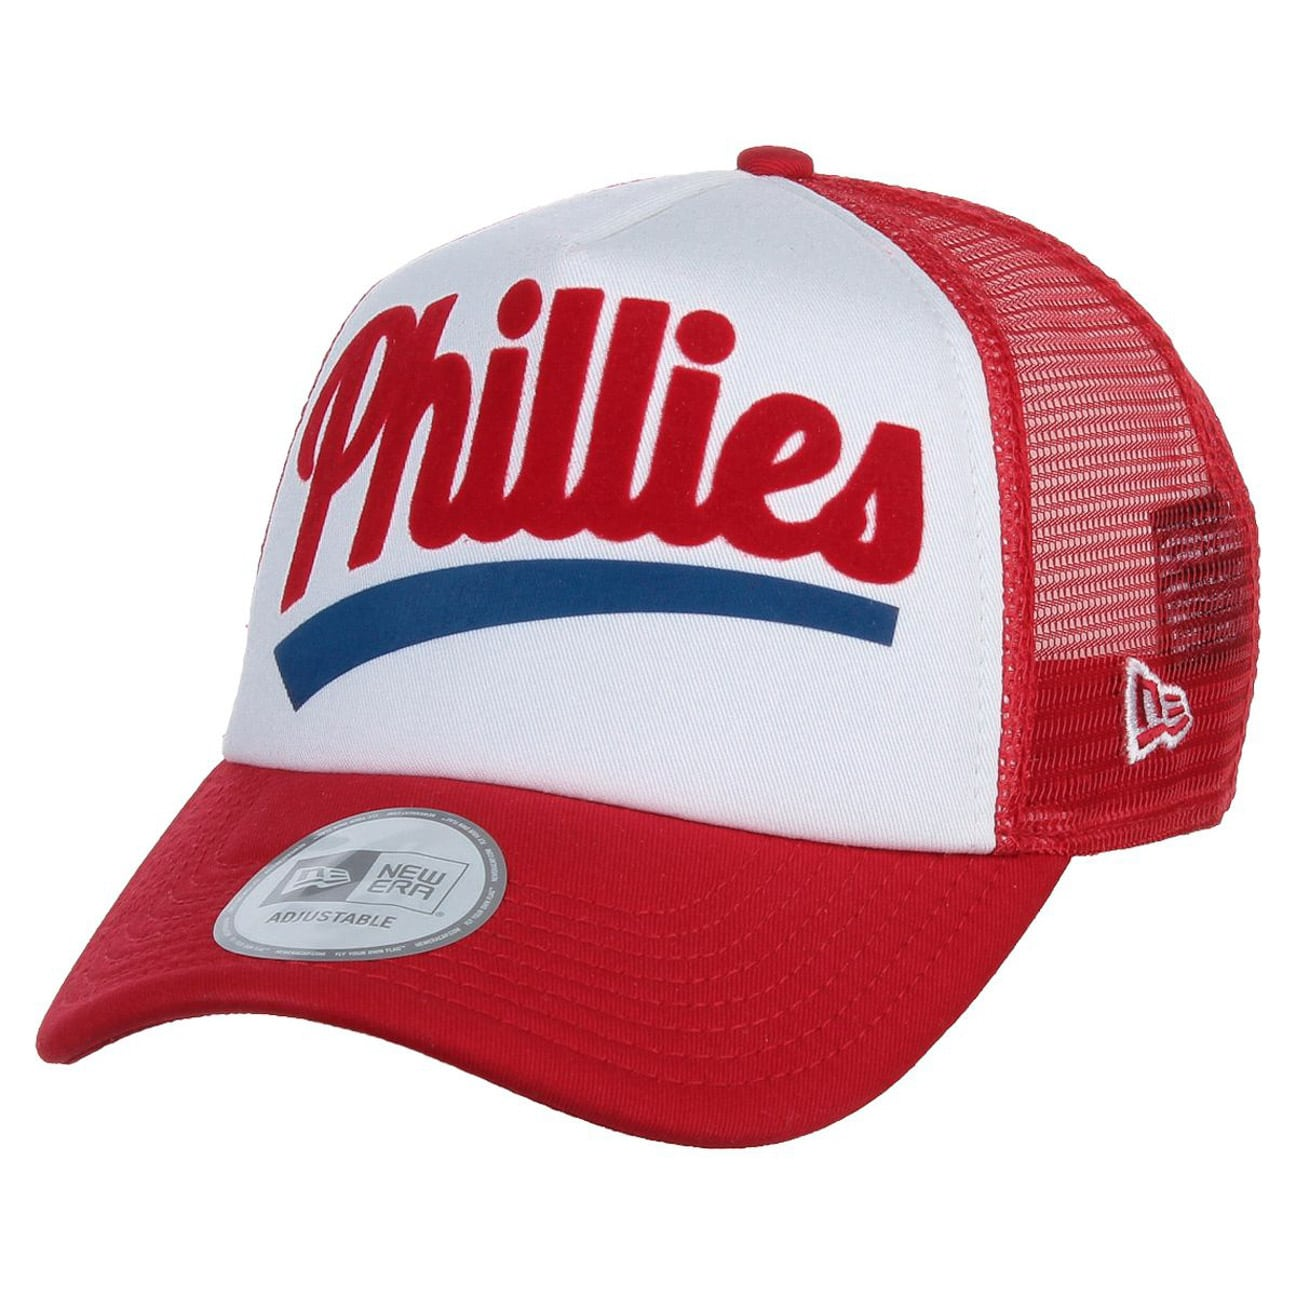 Fresh Phillies Trucker Cap by New Era - red 1 569ce09afbd